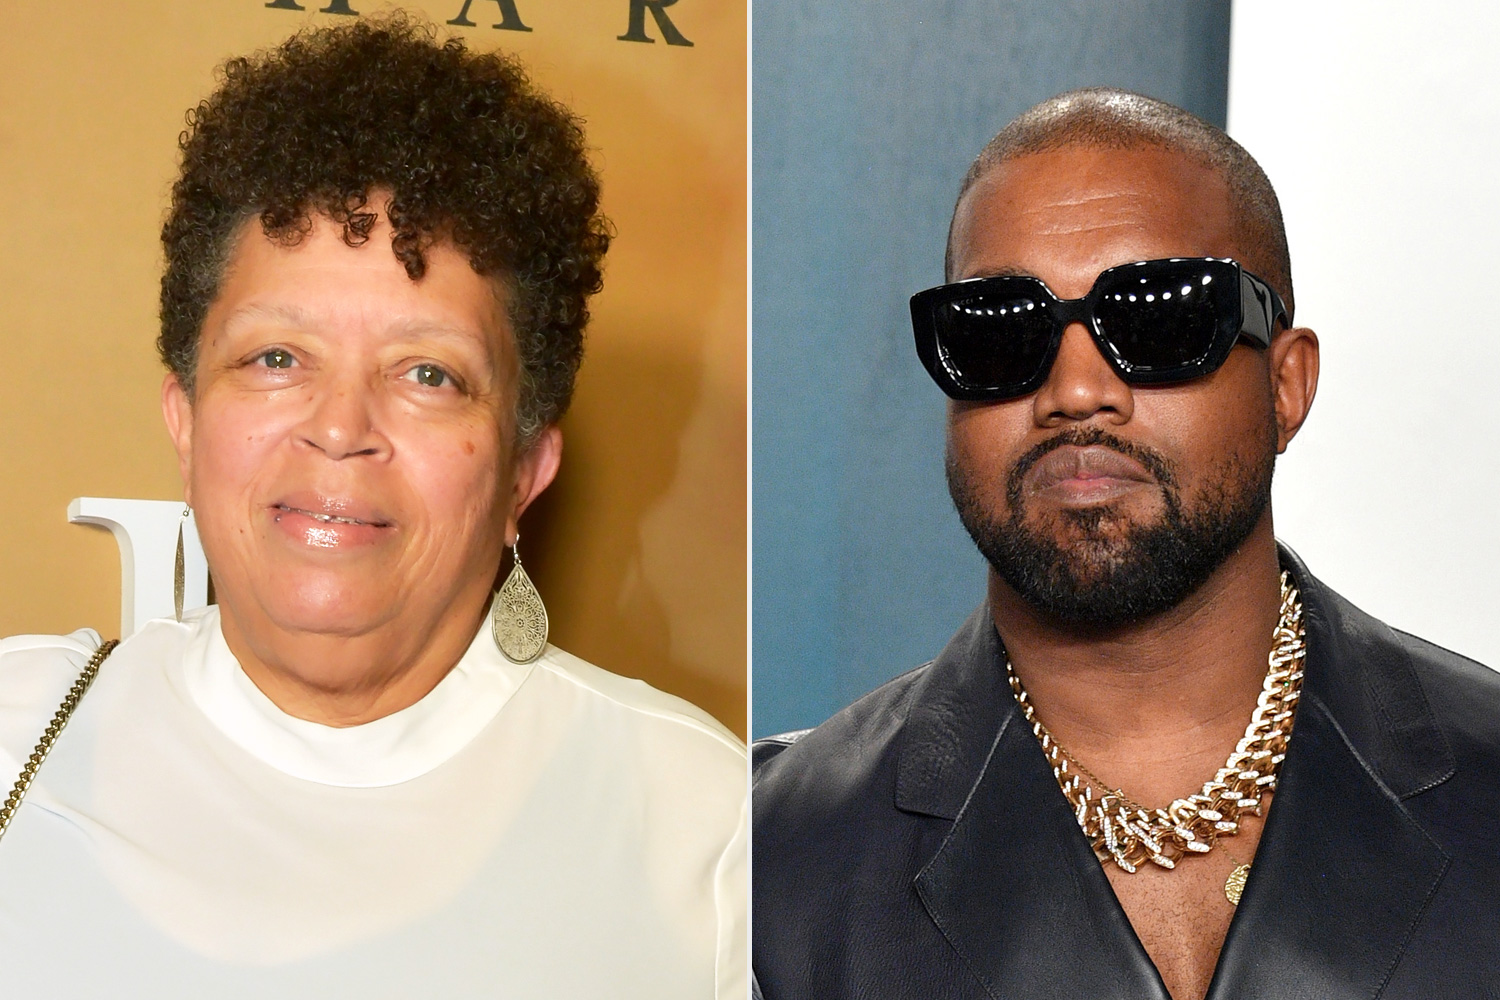 Harriet Tubman's Relative Slams Kanye West's Comments About Her